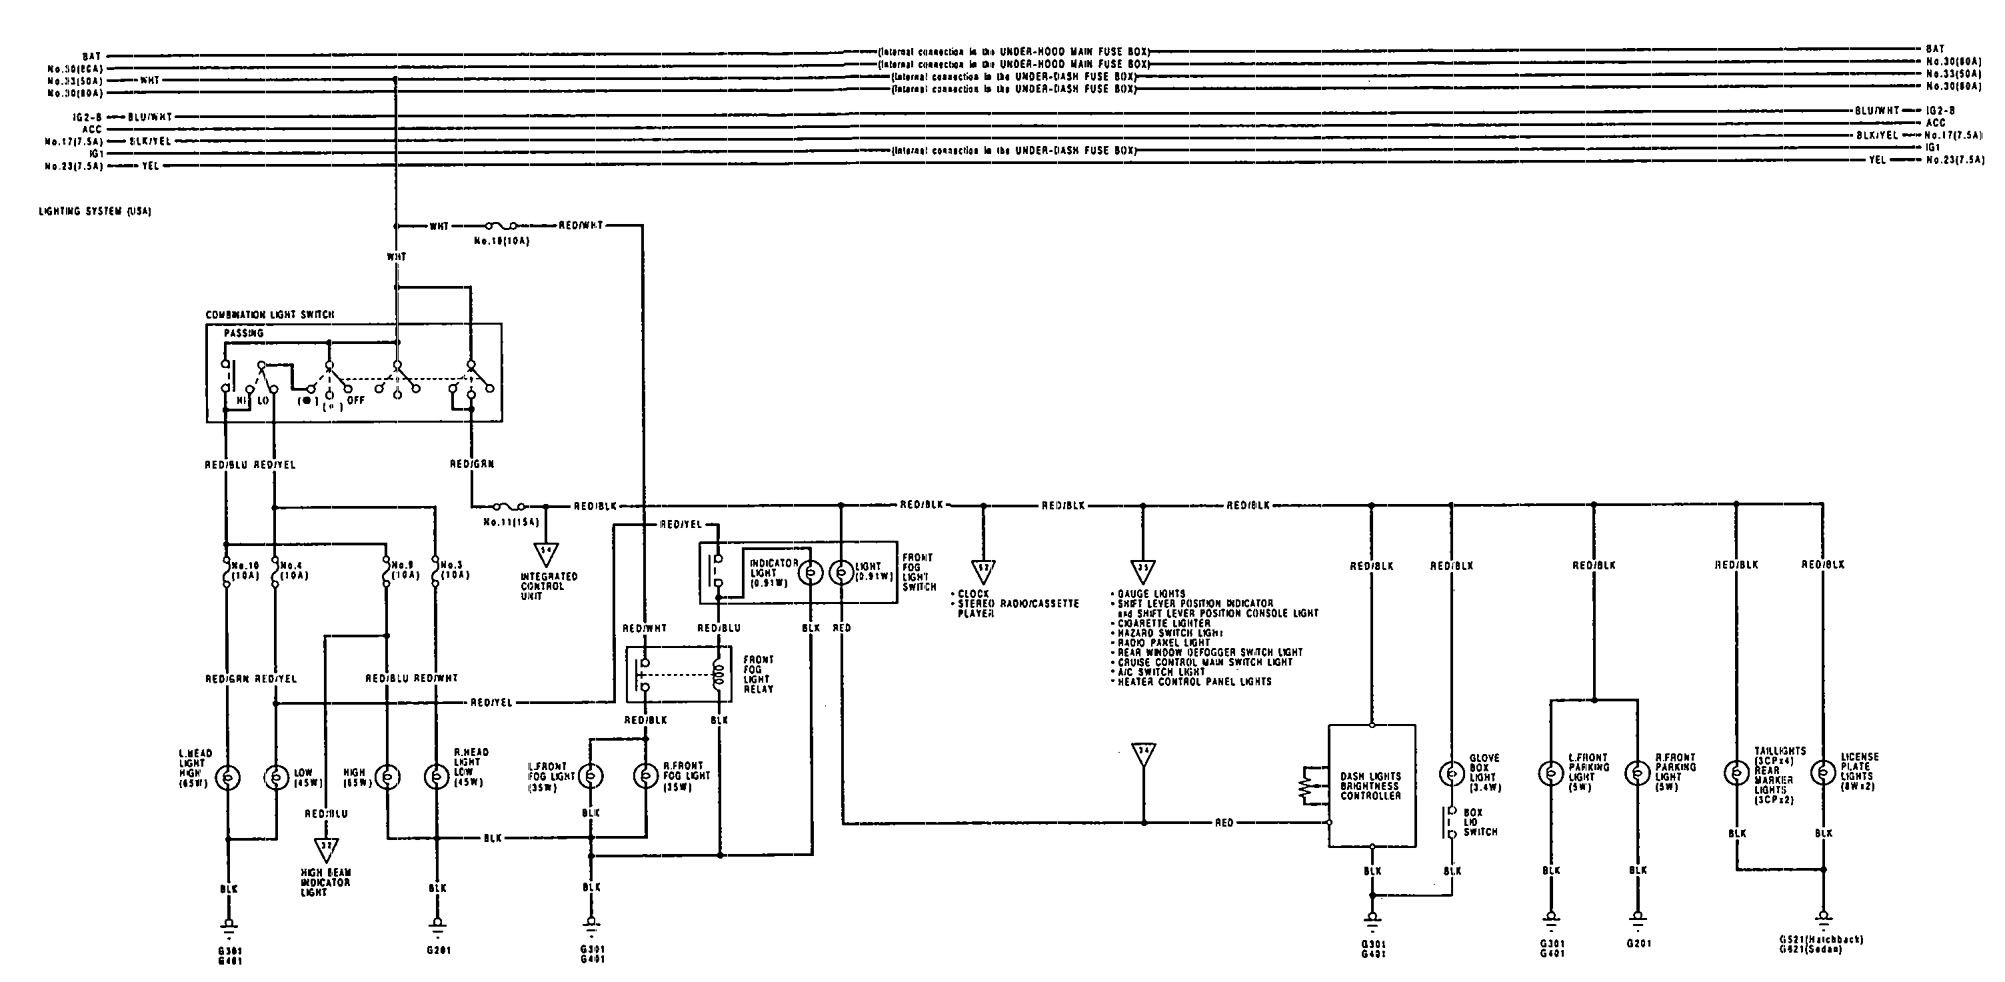 Acura Integra (1992) - wiring diagrams - reverse lamp - Carknowledge.info Carknowledge.info